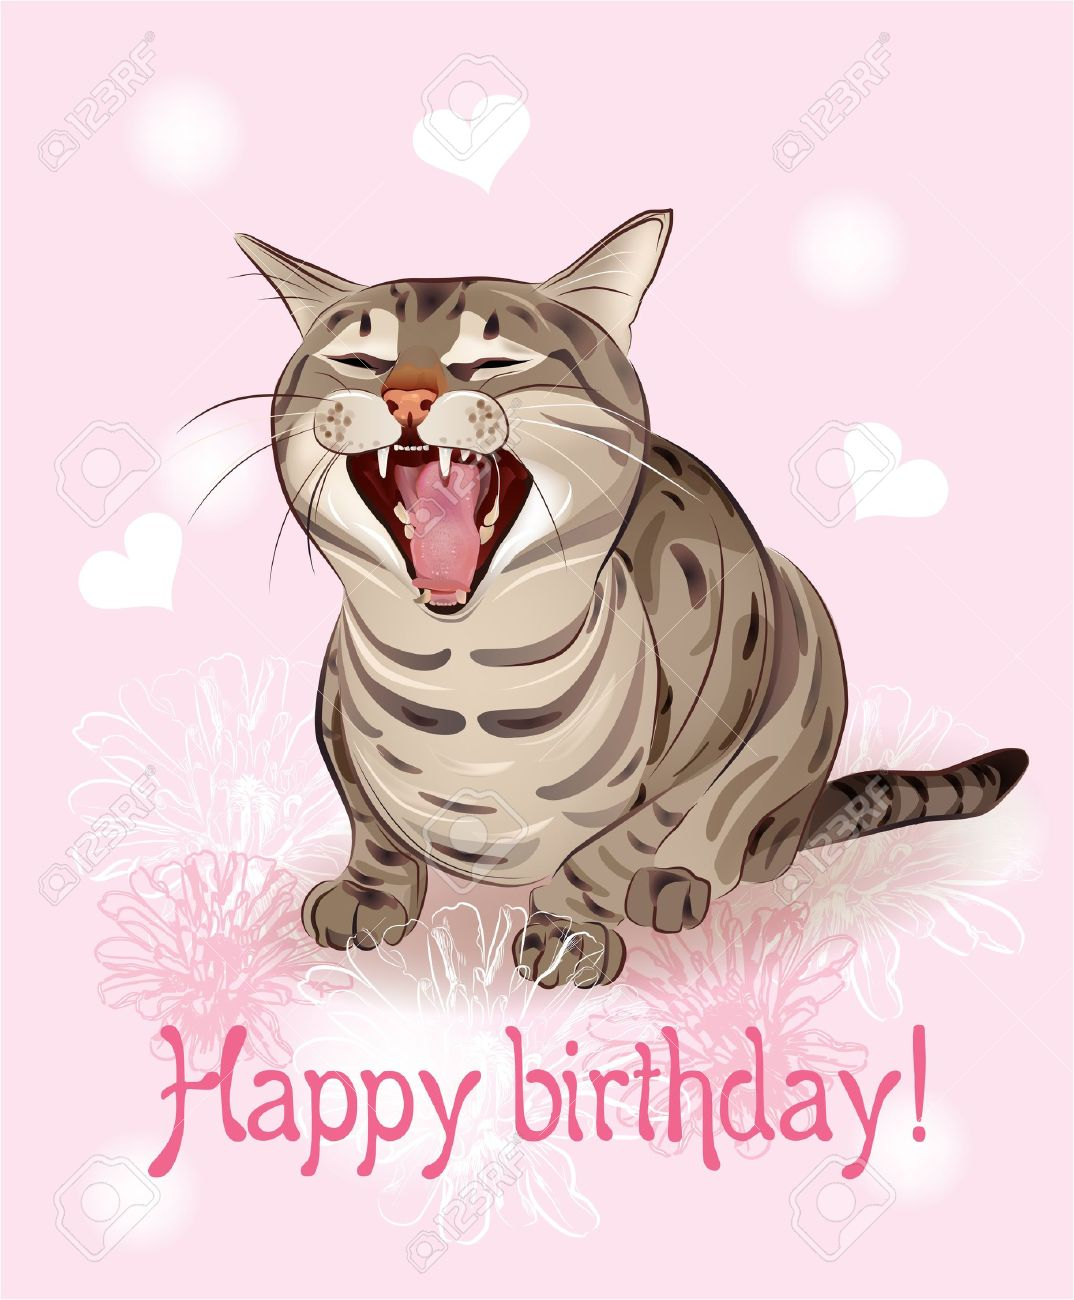 Happy Birthday Card Funny Cat Sings Greeting Song Pink Background With Hearts And Flowers